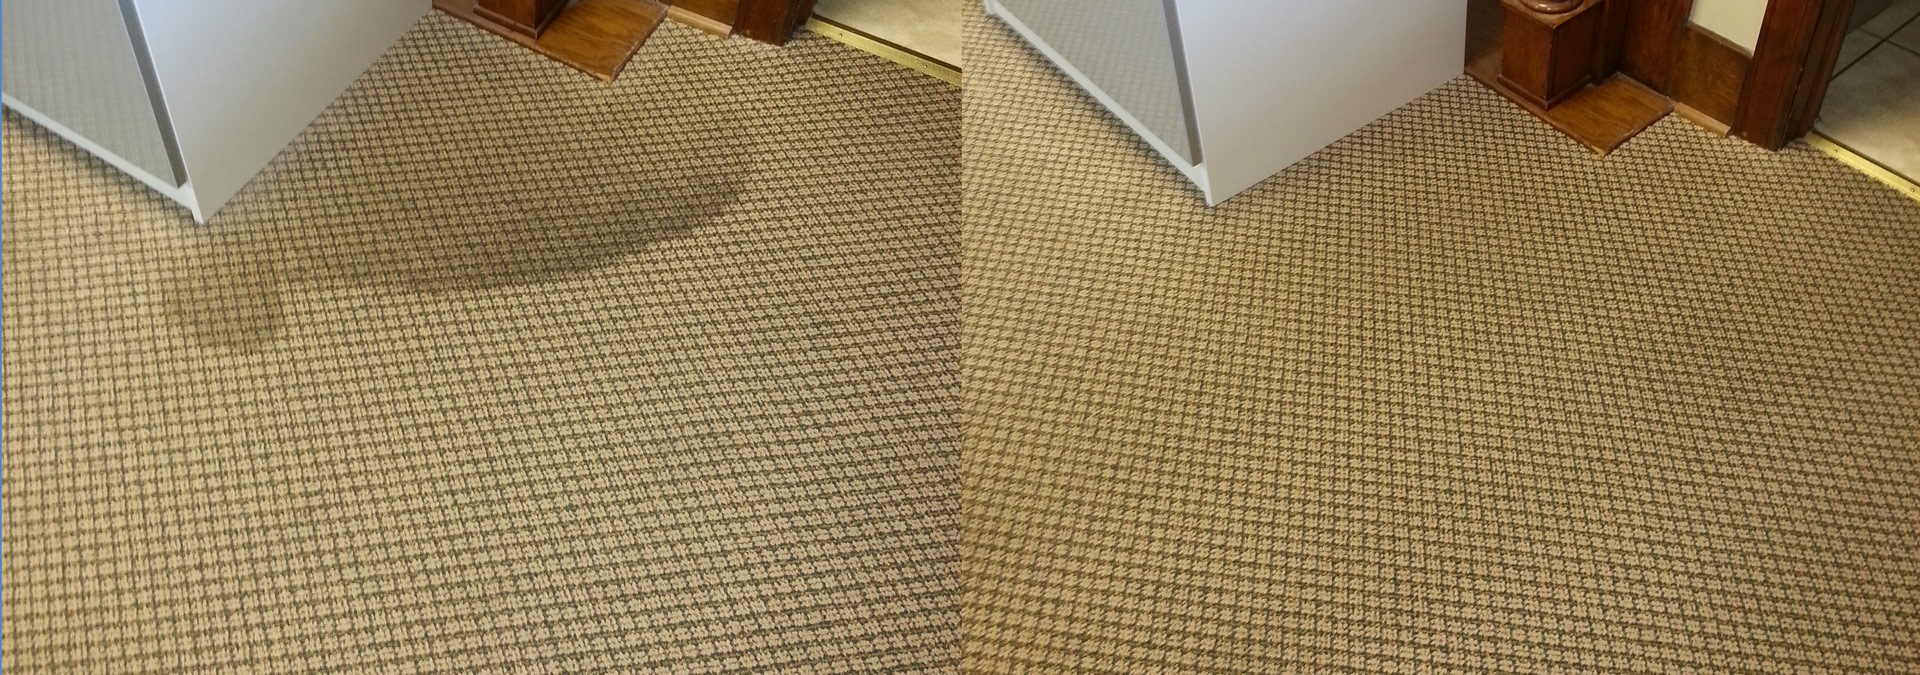 Eco Friendly Carpet professional carpet cleaning services pa and md